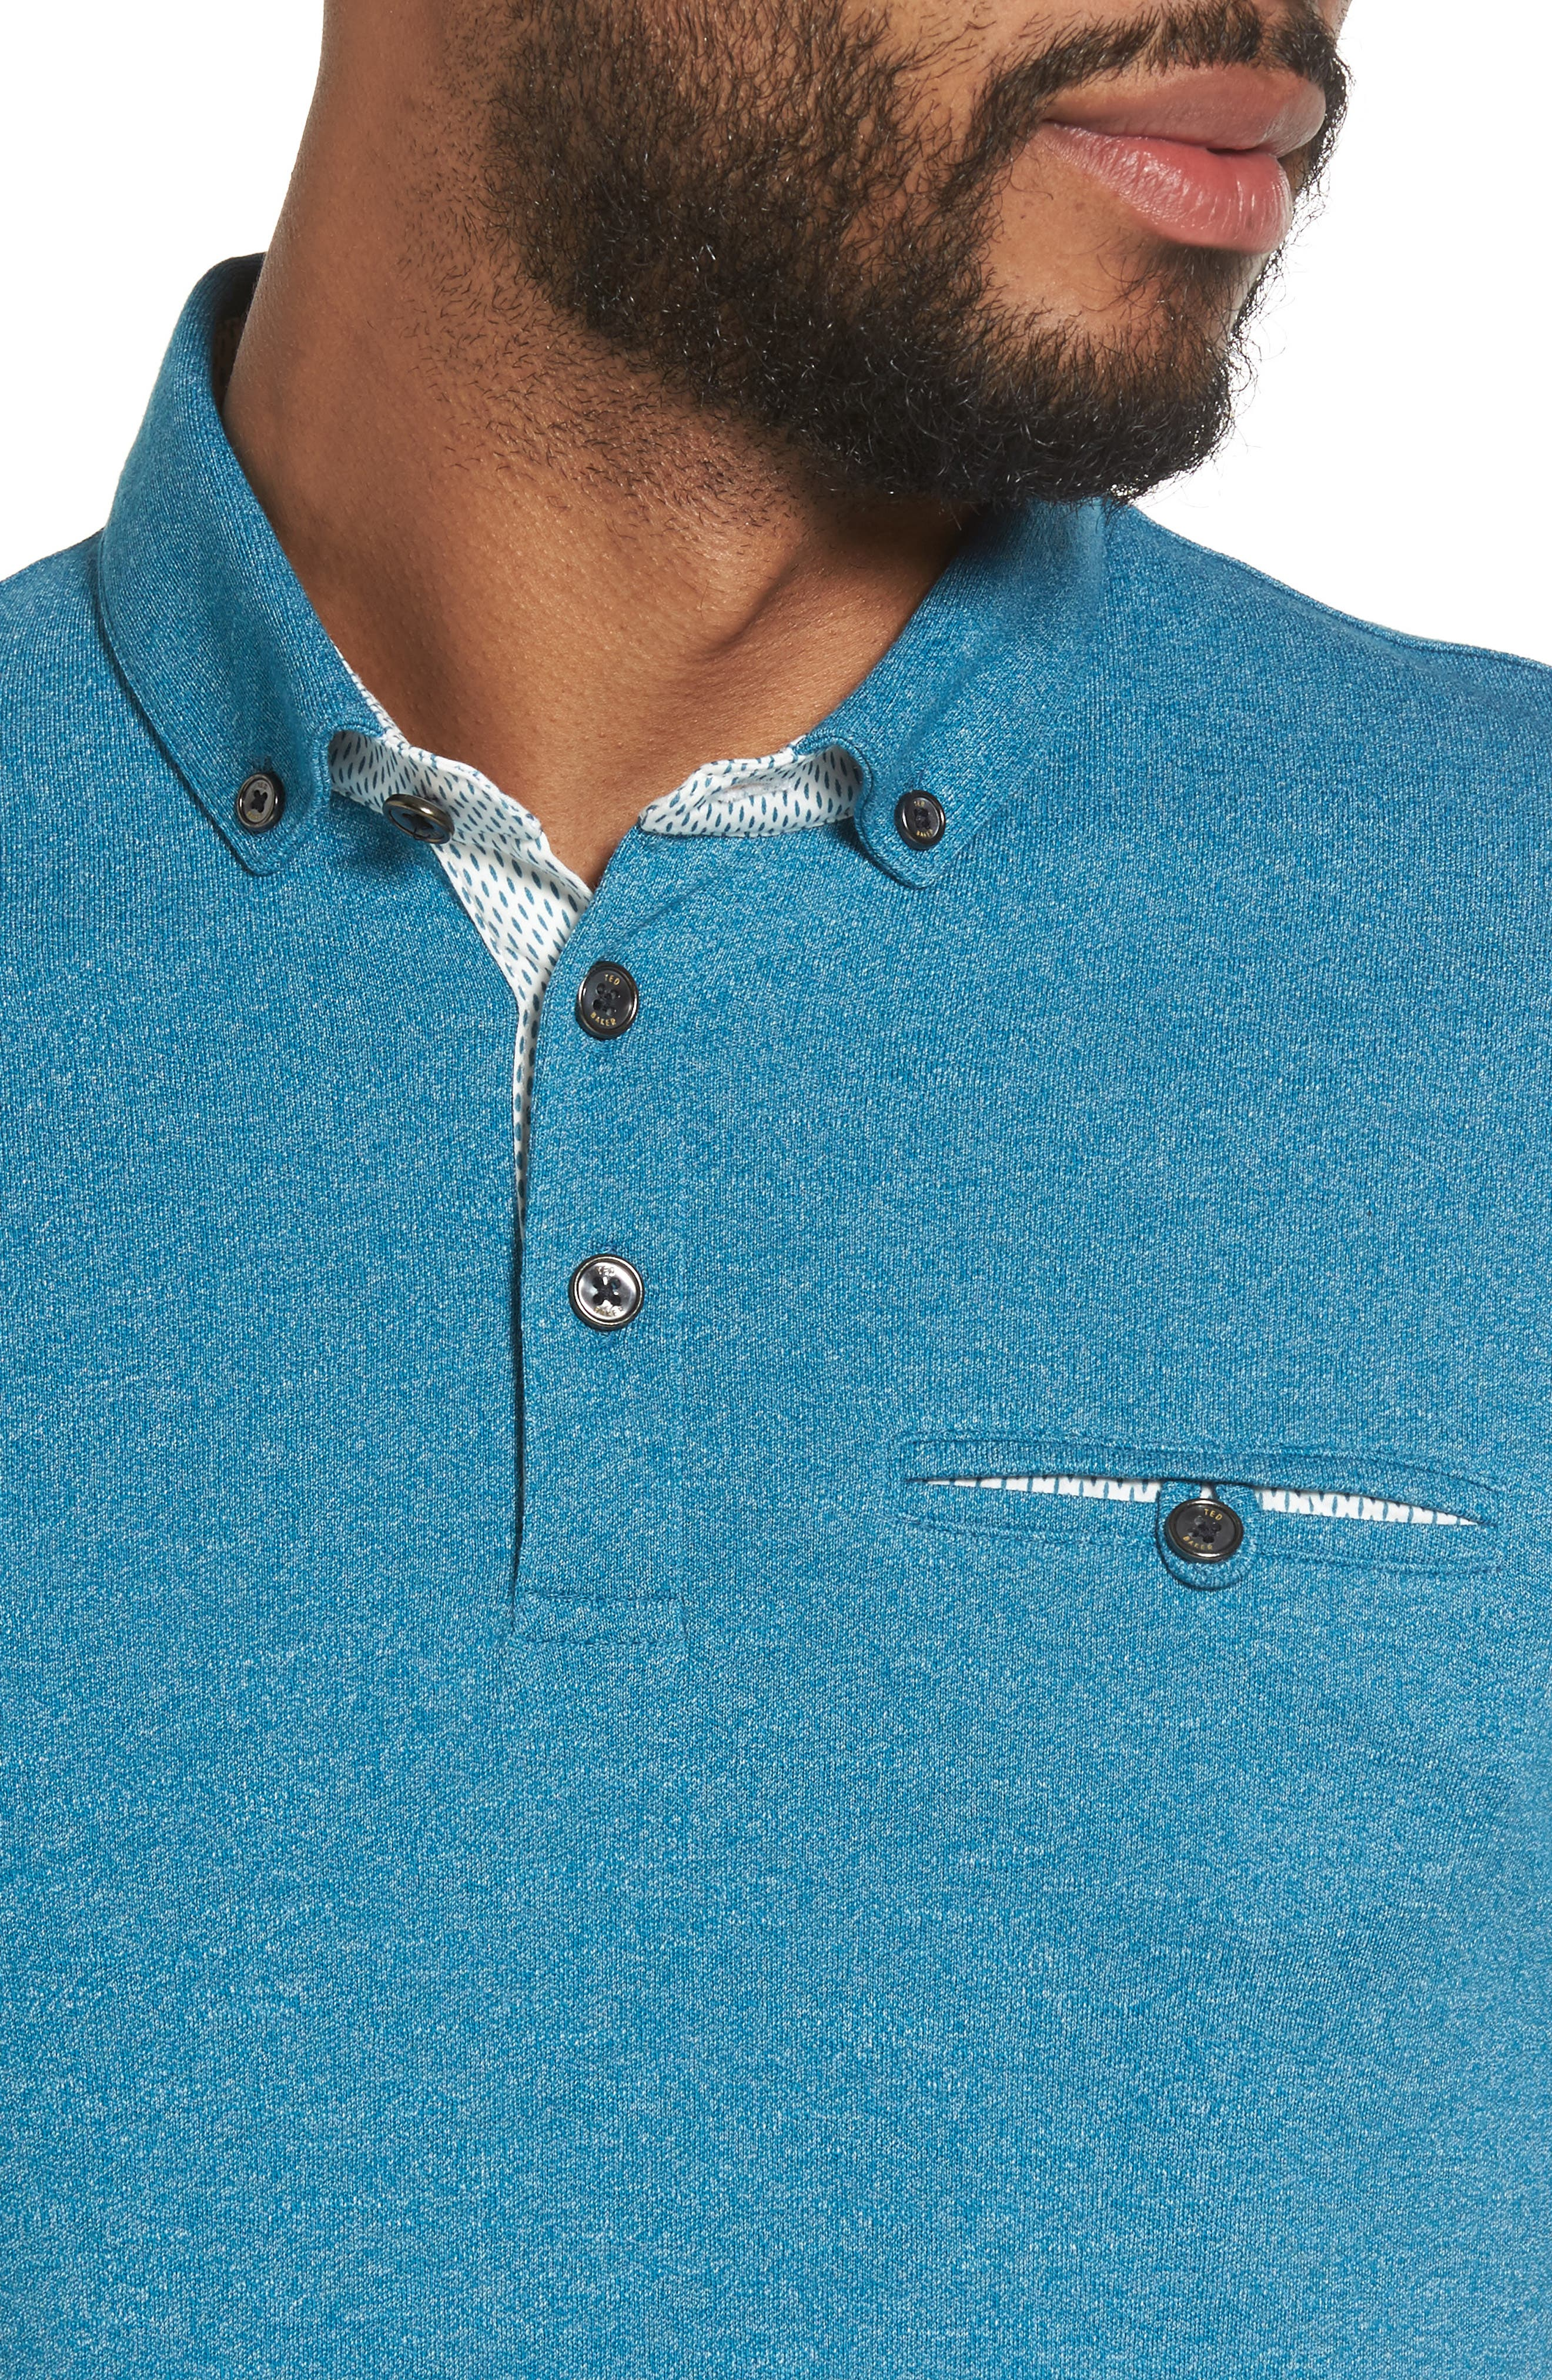 Frankiy Button Collar Polo,                             Alternate thumbnail 4, color,                             Teal